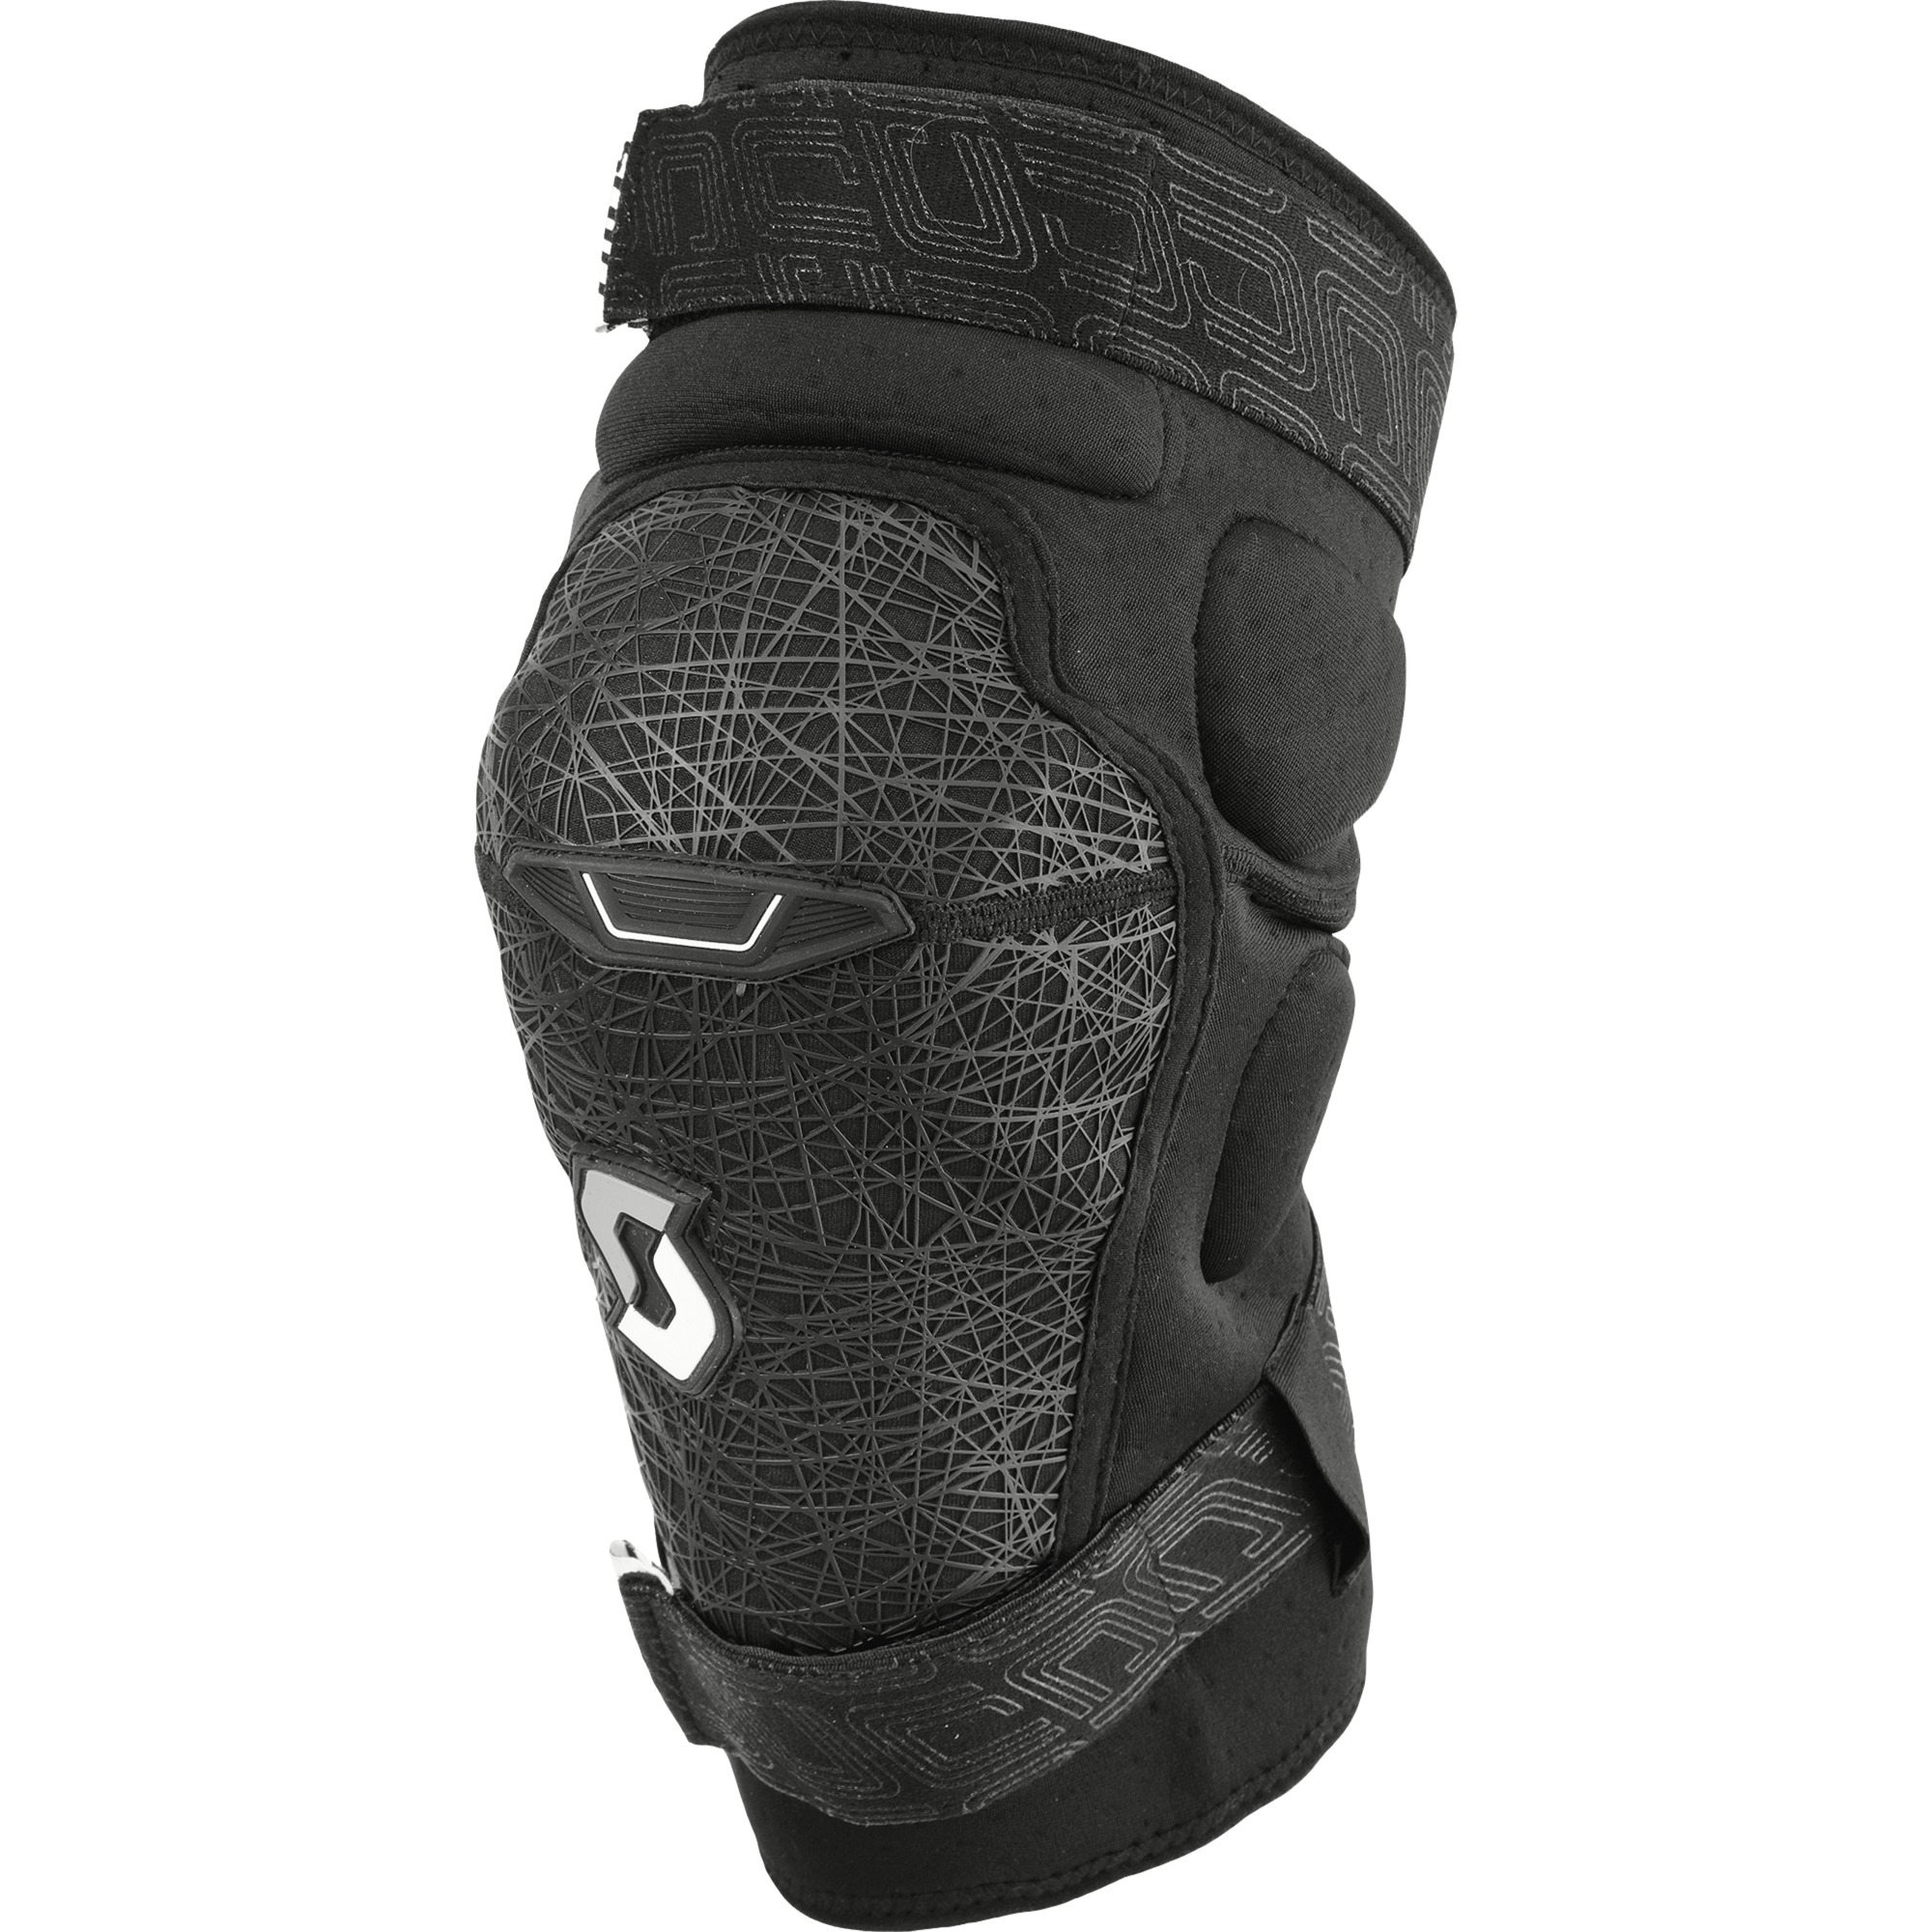 Knee Guards Grenade Pro II